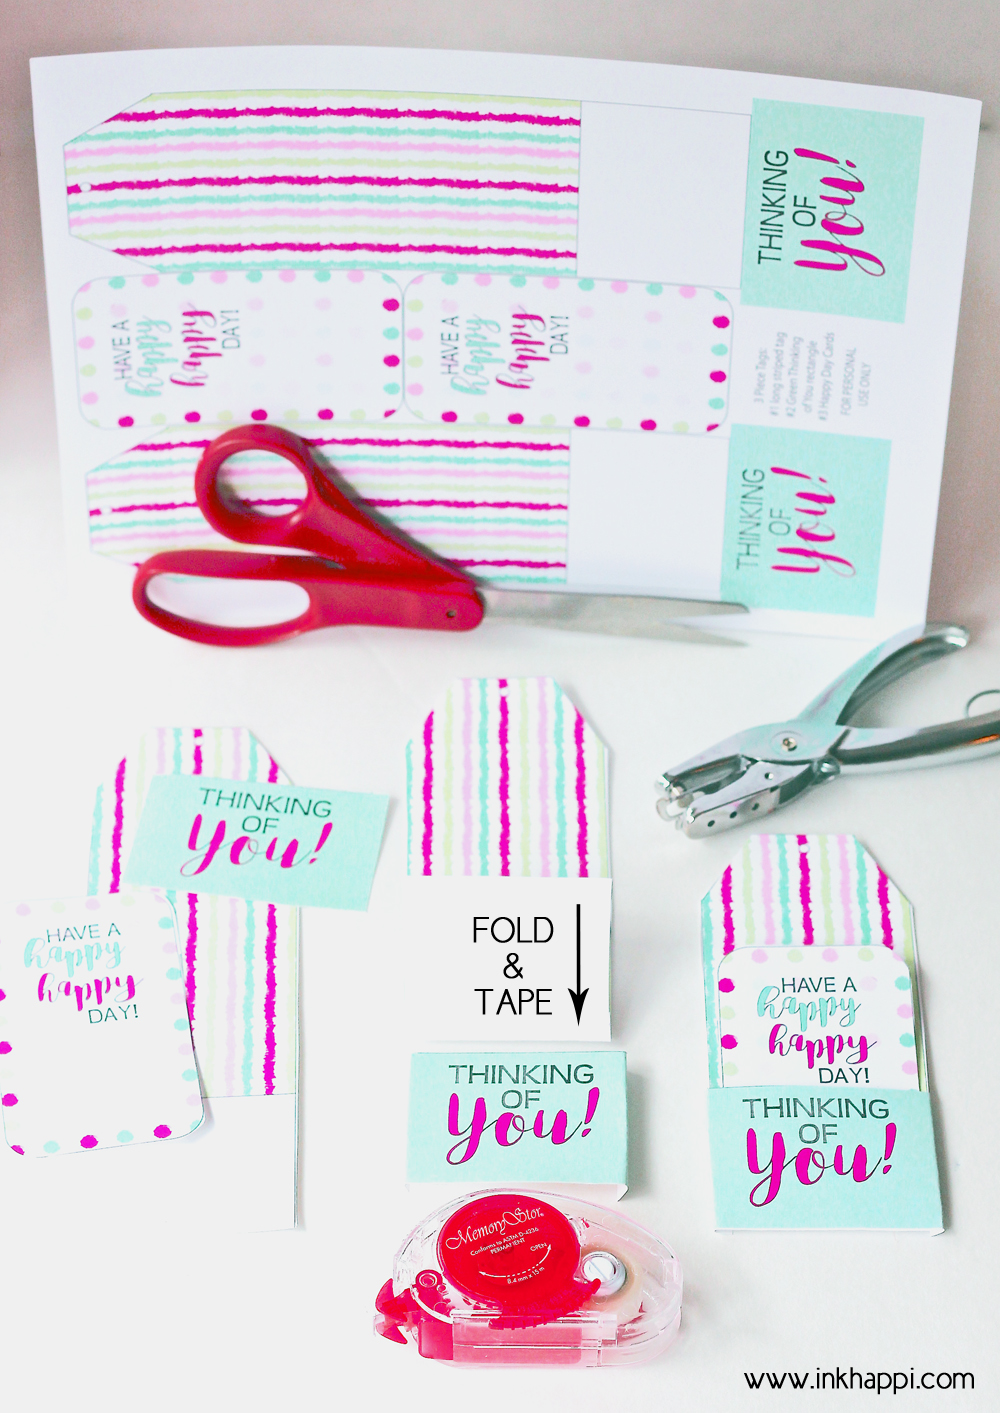 Print out these FREE Printable Thinking of You Gift Tags for a special gift for a friend! They'll definitely brighten up anyone's day!